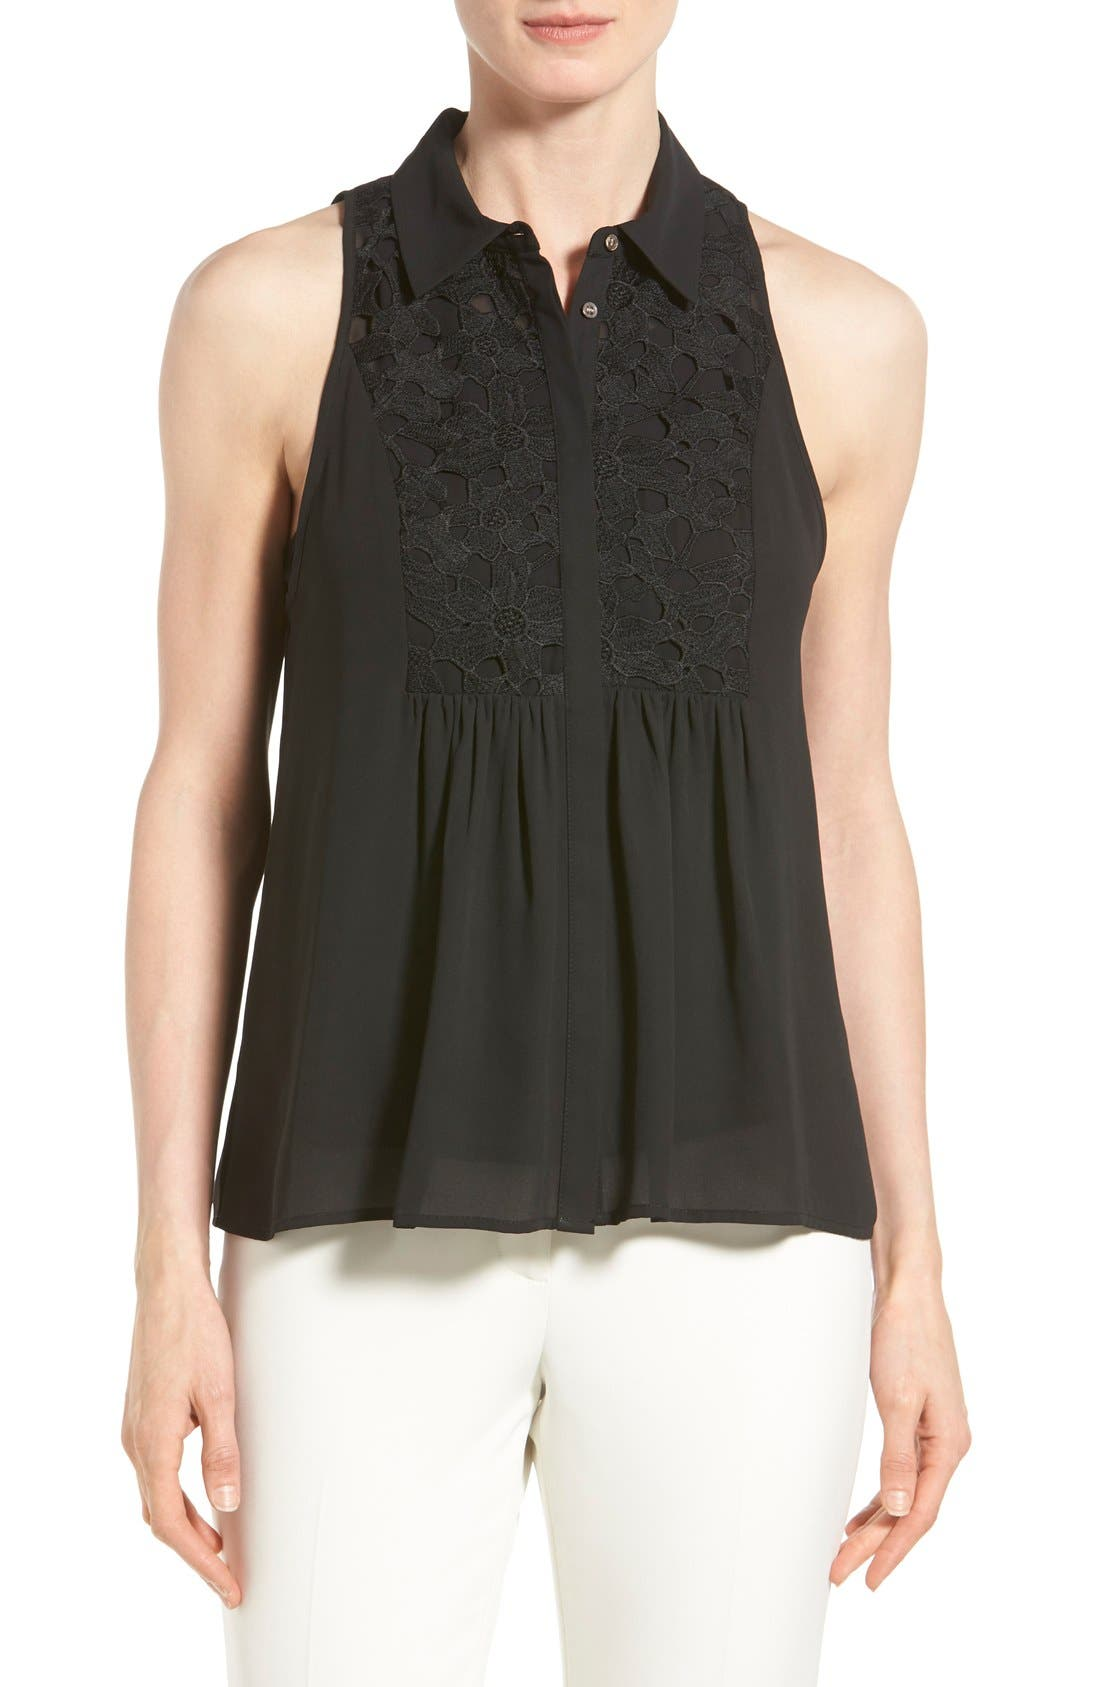 Alternate Image 1 Selected - Vince Camuto Lace Trim Sleeveless Blouse